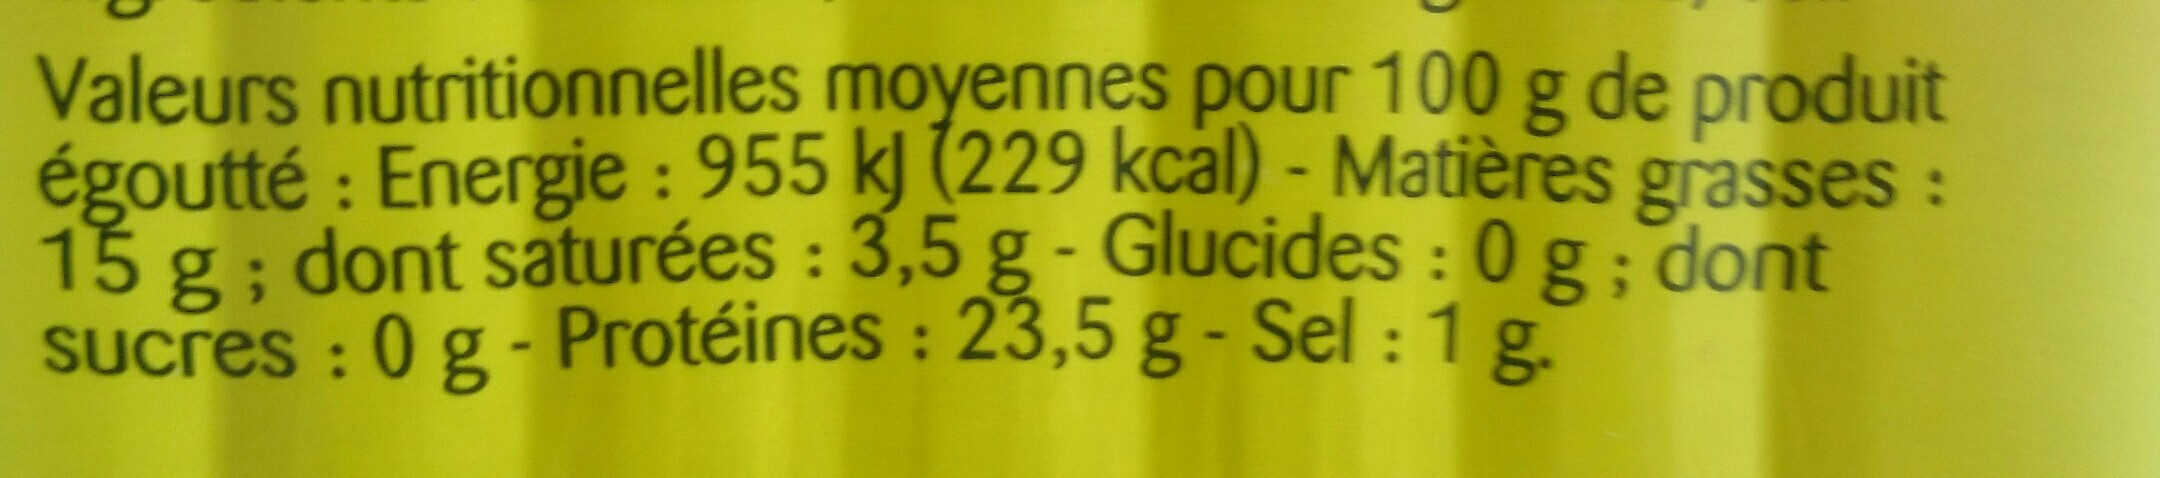 sardines huile d'olive vierge extra - Nutrition facts - fr